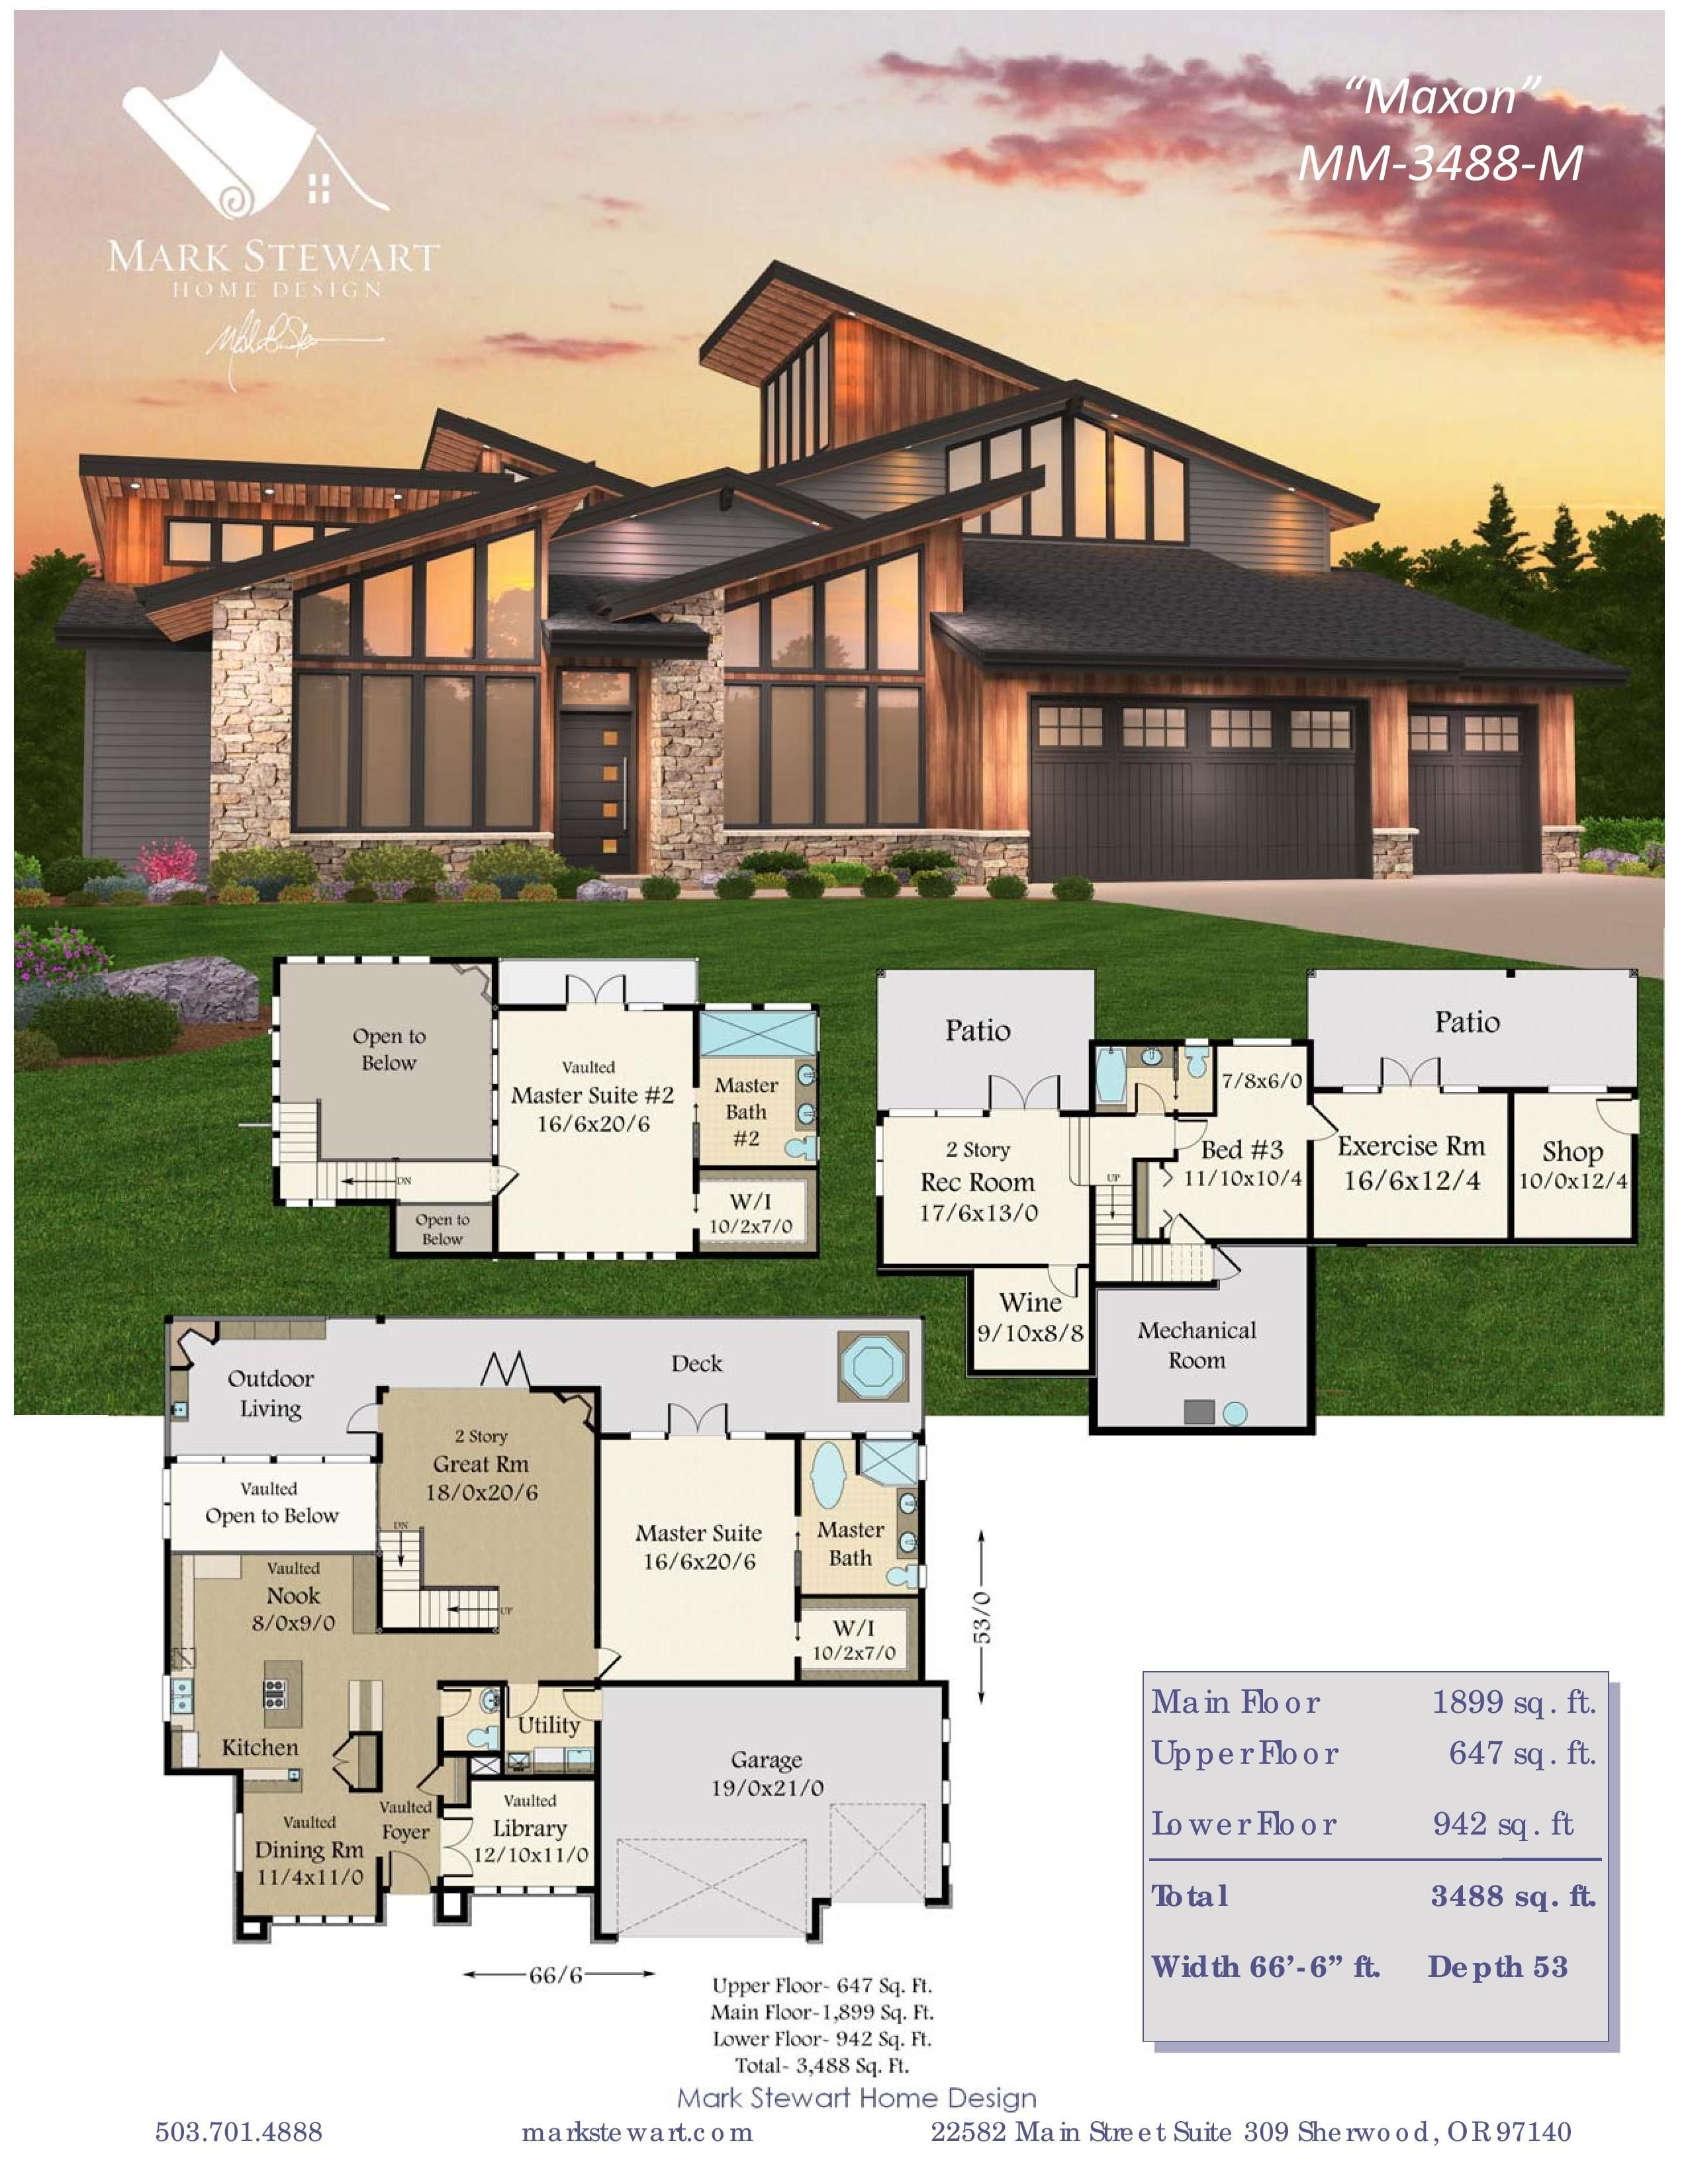 10 Spectacular Home Design Architectural Drawing Ideas In 2020 Modern Style House Plans Sims House Plans Sims House Design